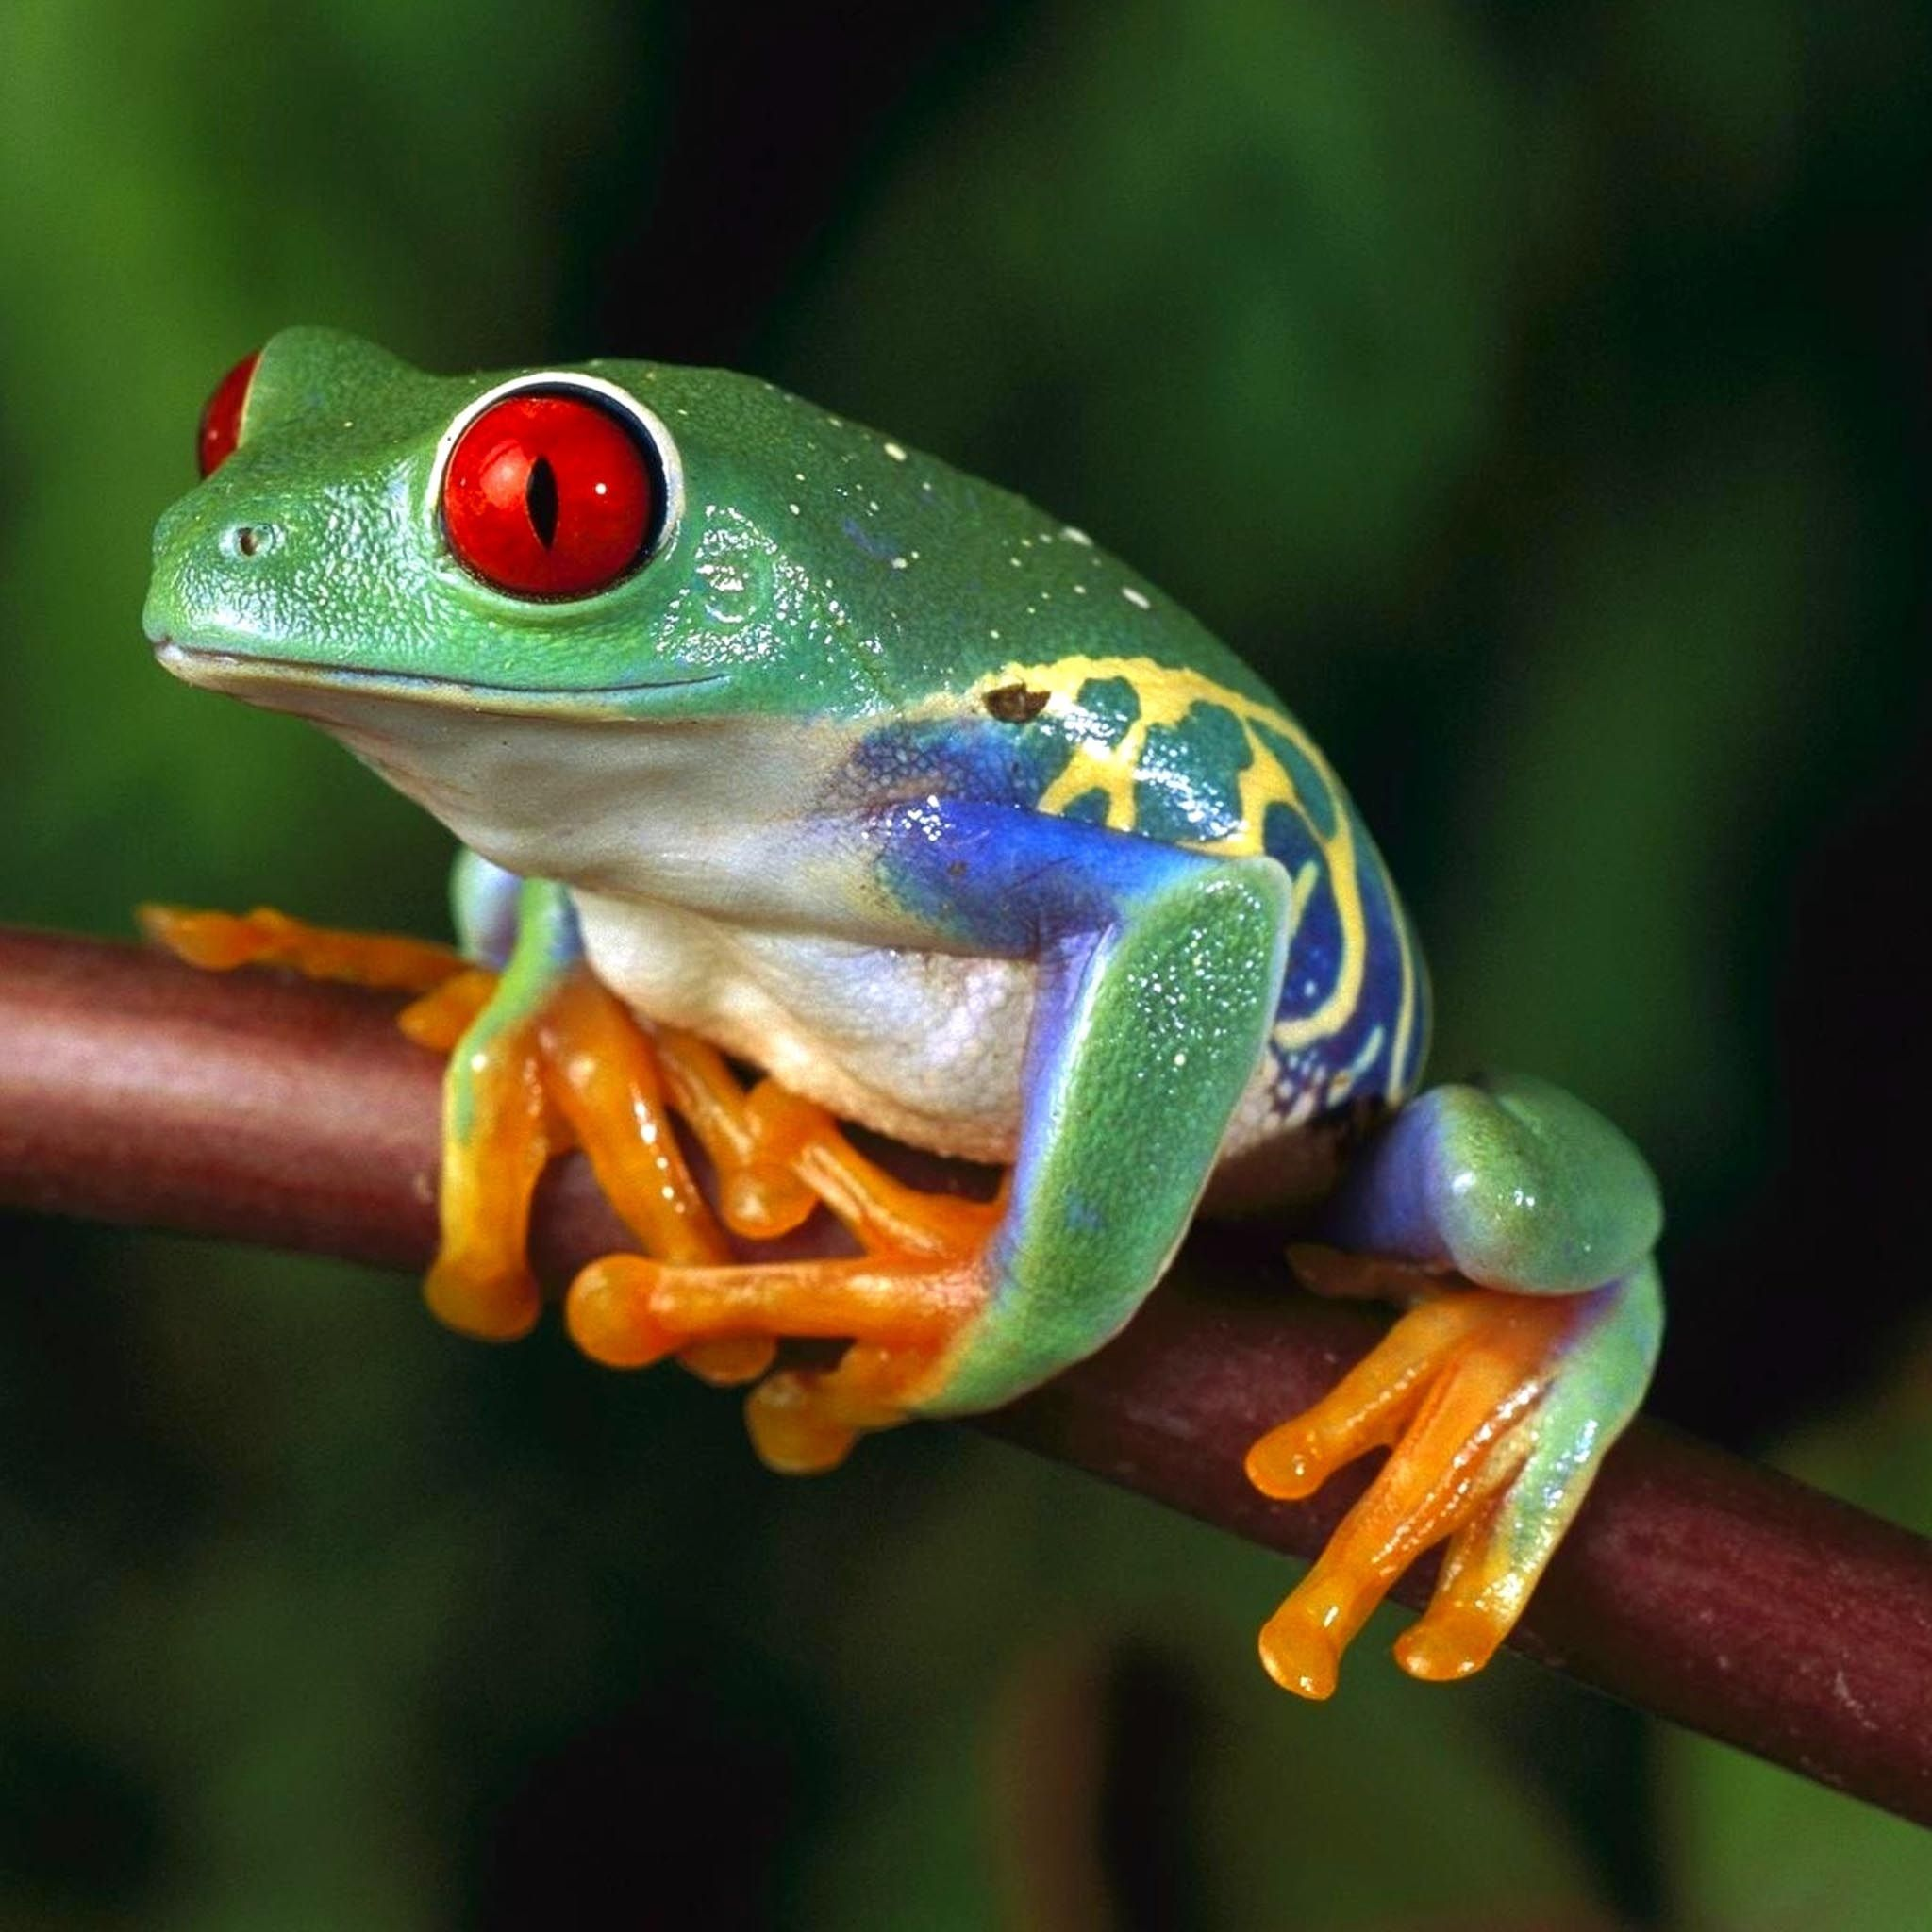 Newimals: Free Lesson Plan Download | Tree frogs, Red eyes and Frogs